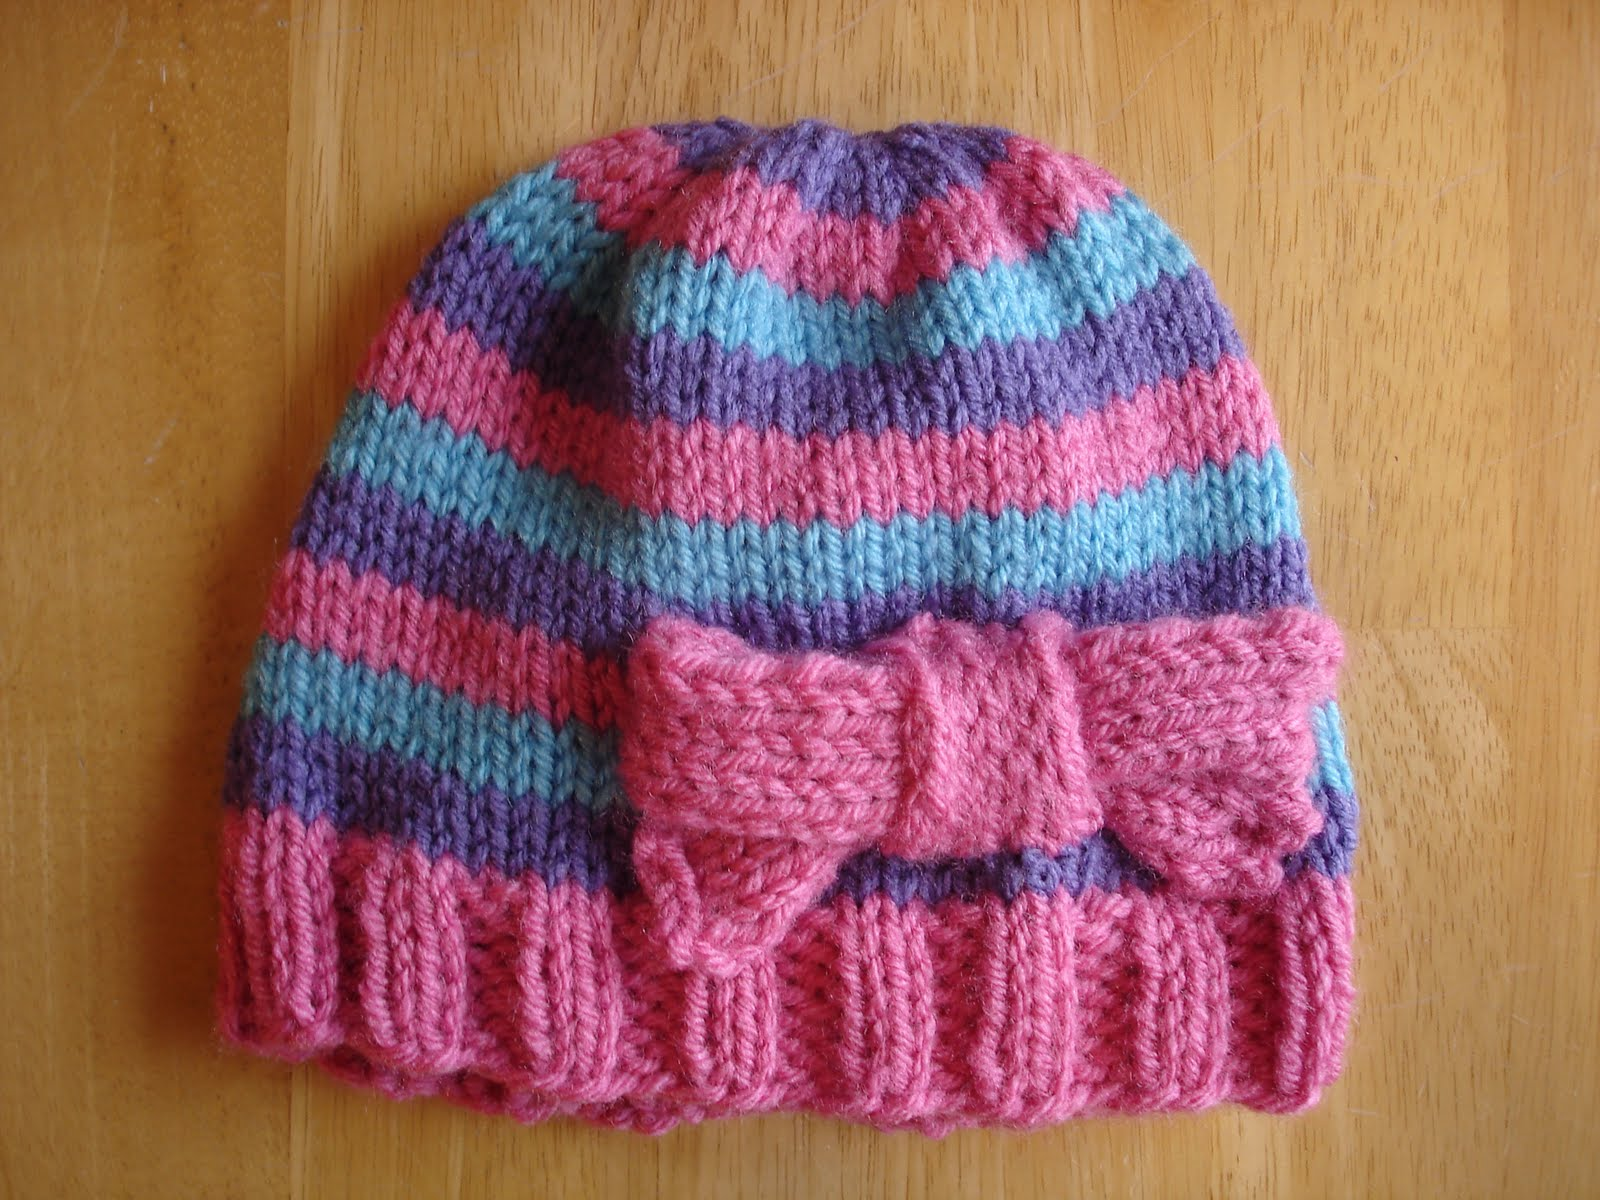 Knitting Hat Free Pattern : Fiber Flux: Free Knitting Pattern...Super Pink Toddler Hat!